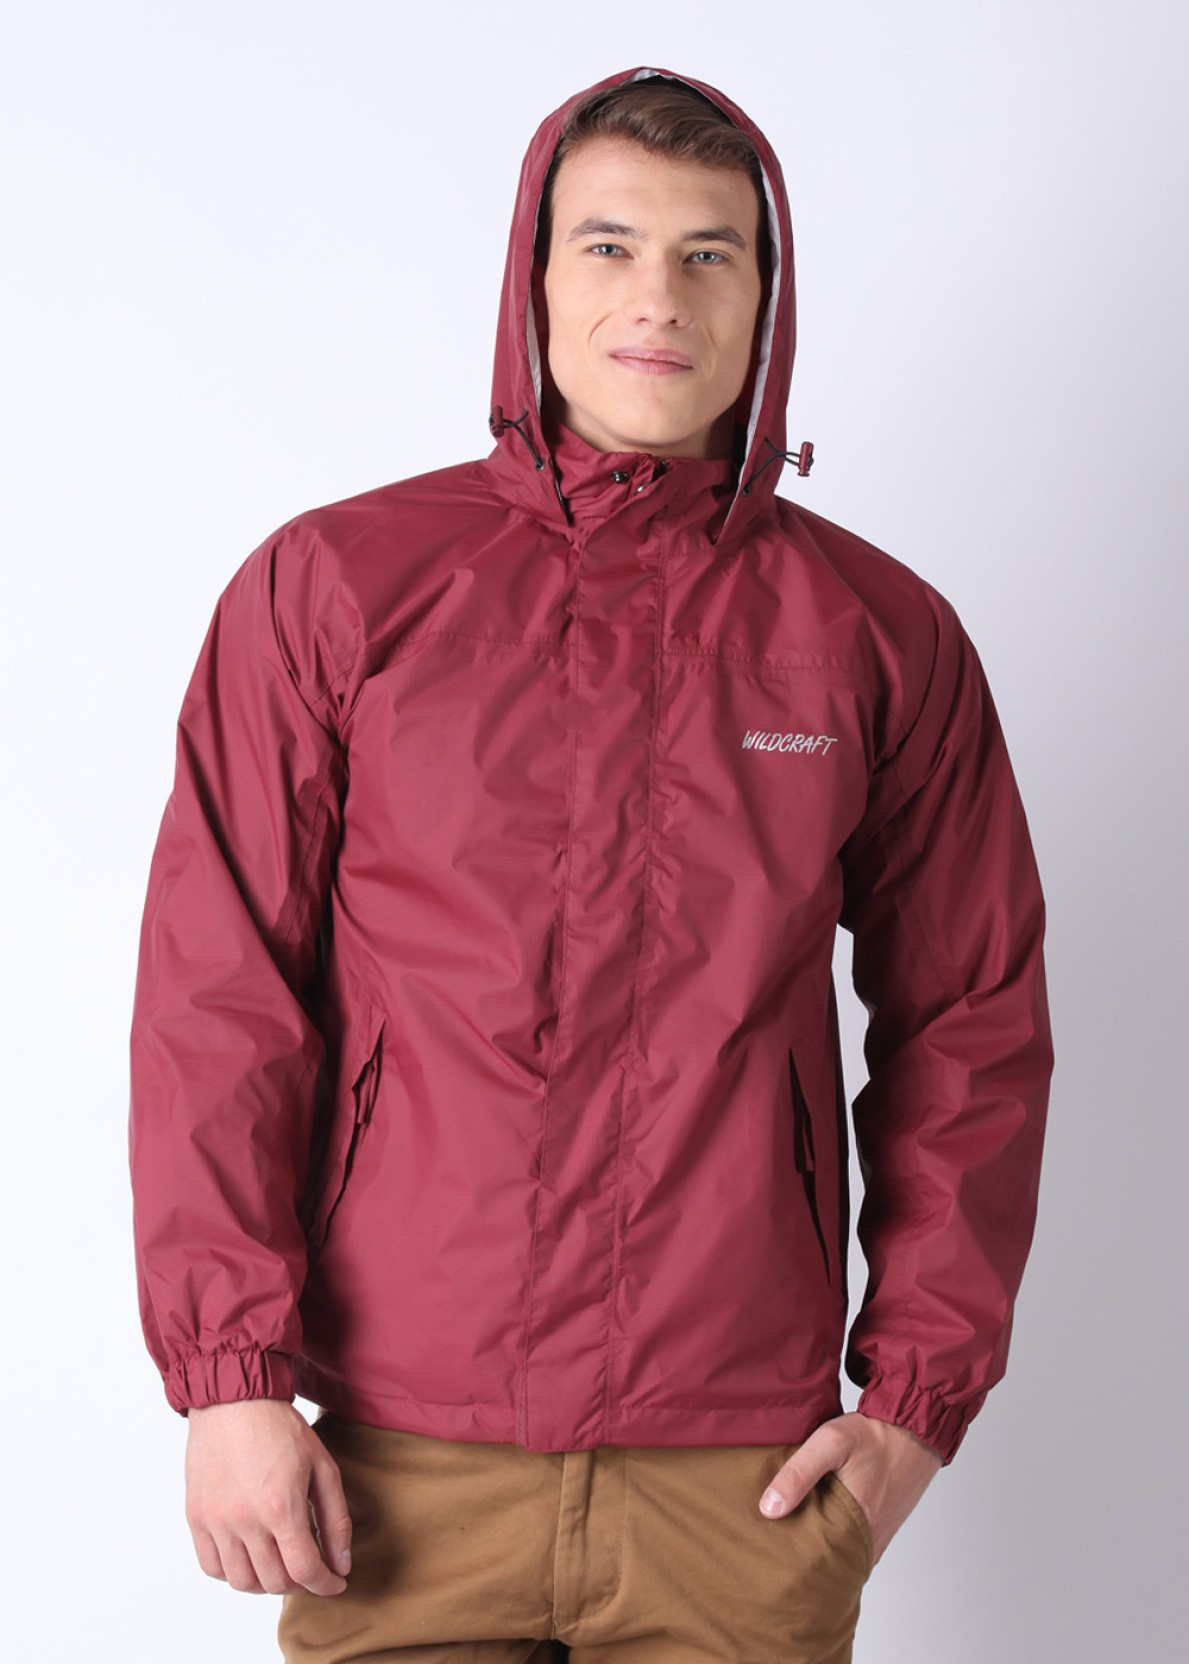 c664f1d7e Wildcraft Solid Men's Raincoat